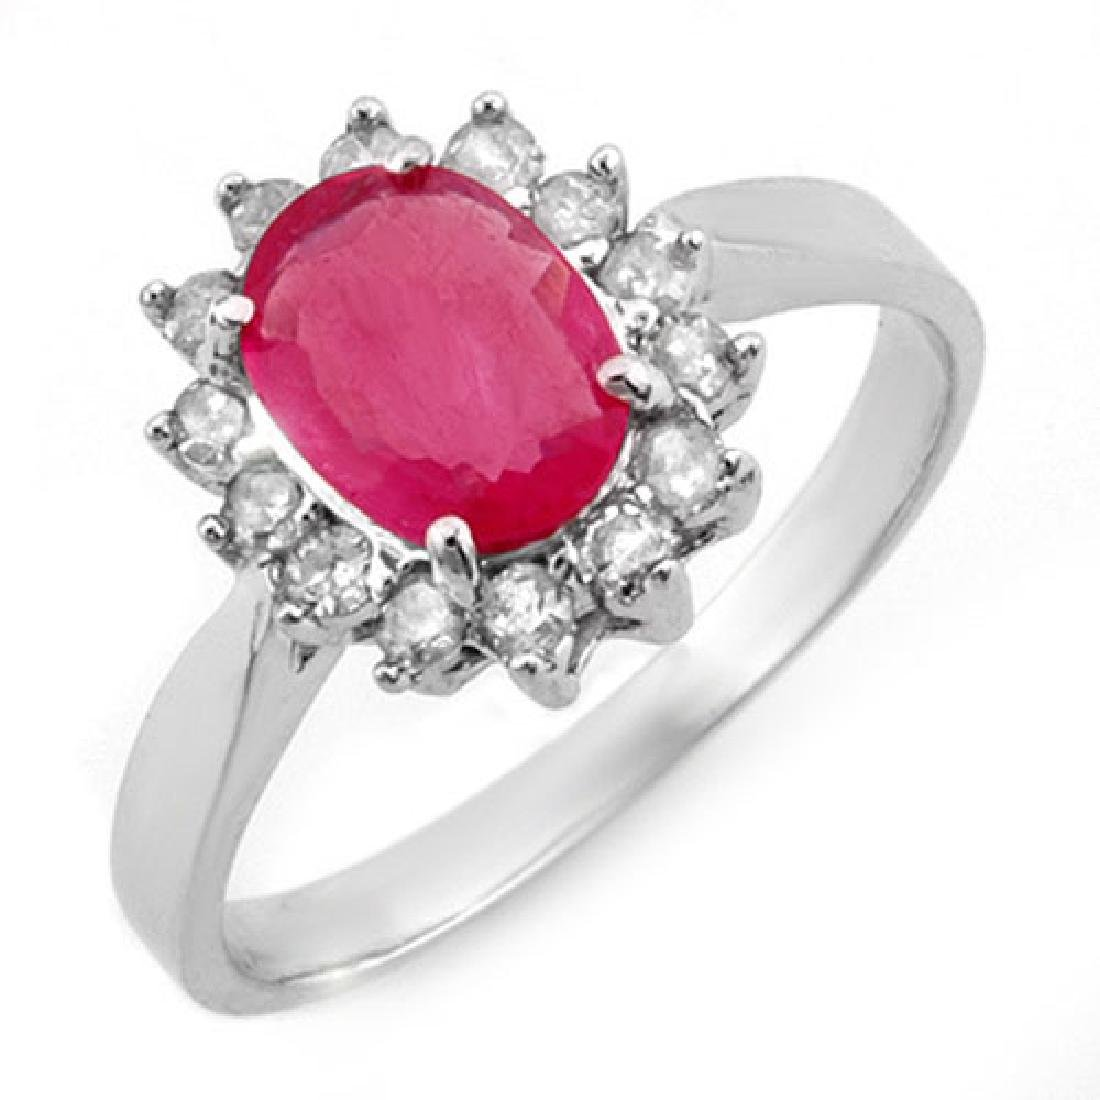 1.27 CTW Ruby & Diamond Ring 10K White Gold